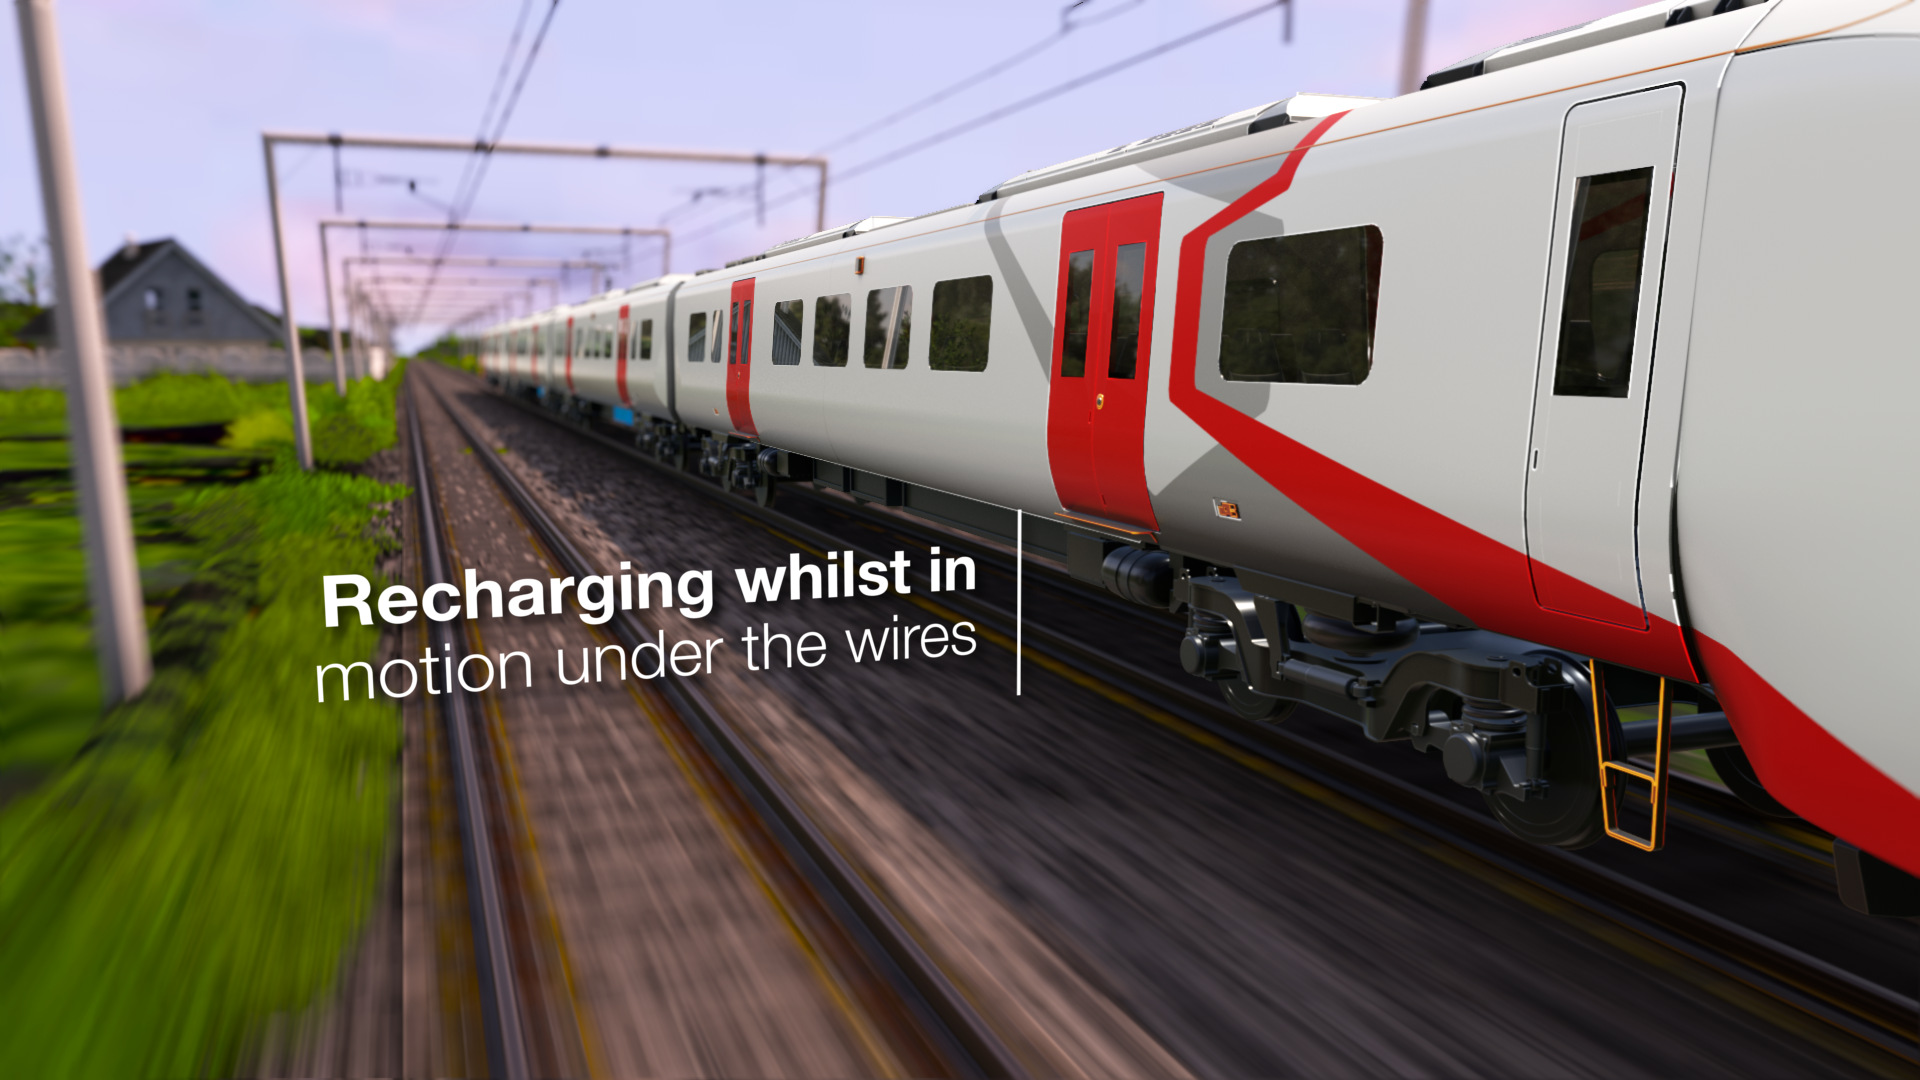 Battery powered train running under wire with graphics - recharging whilst in motion under the wires